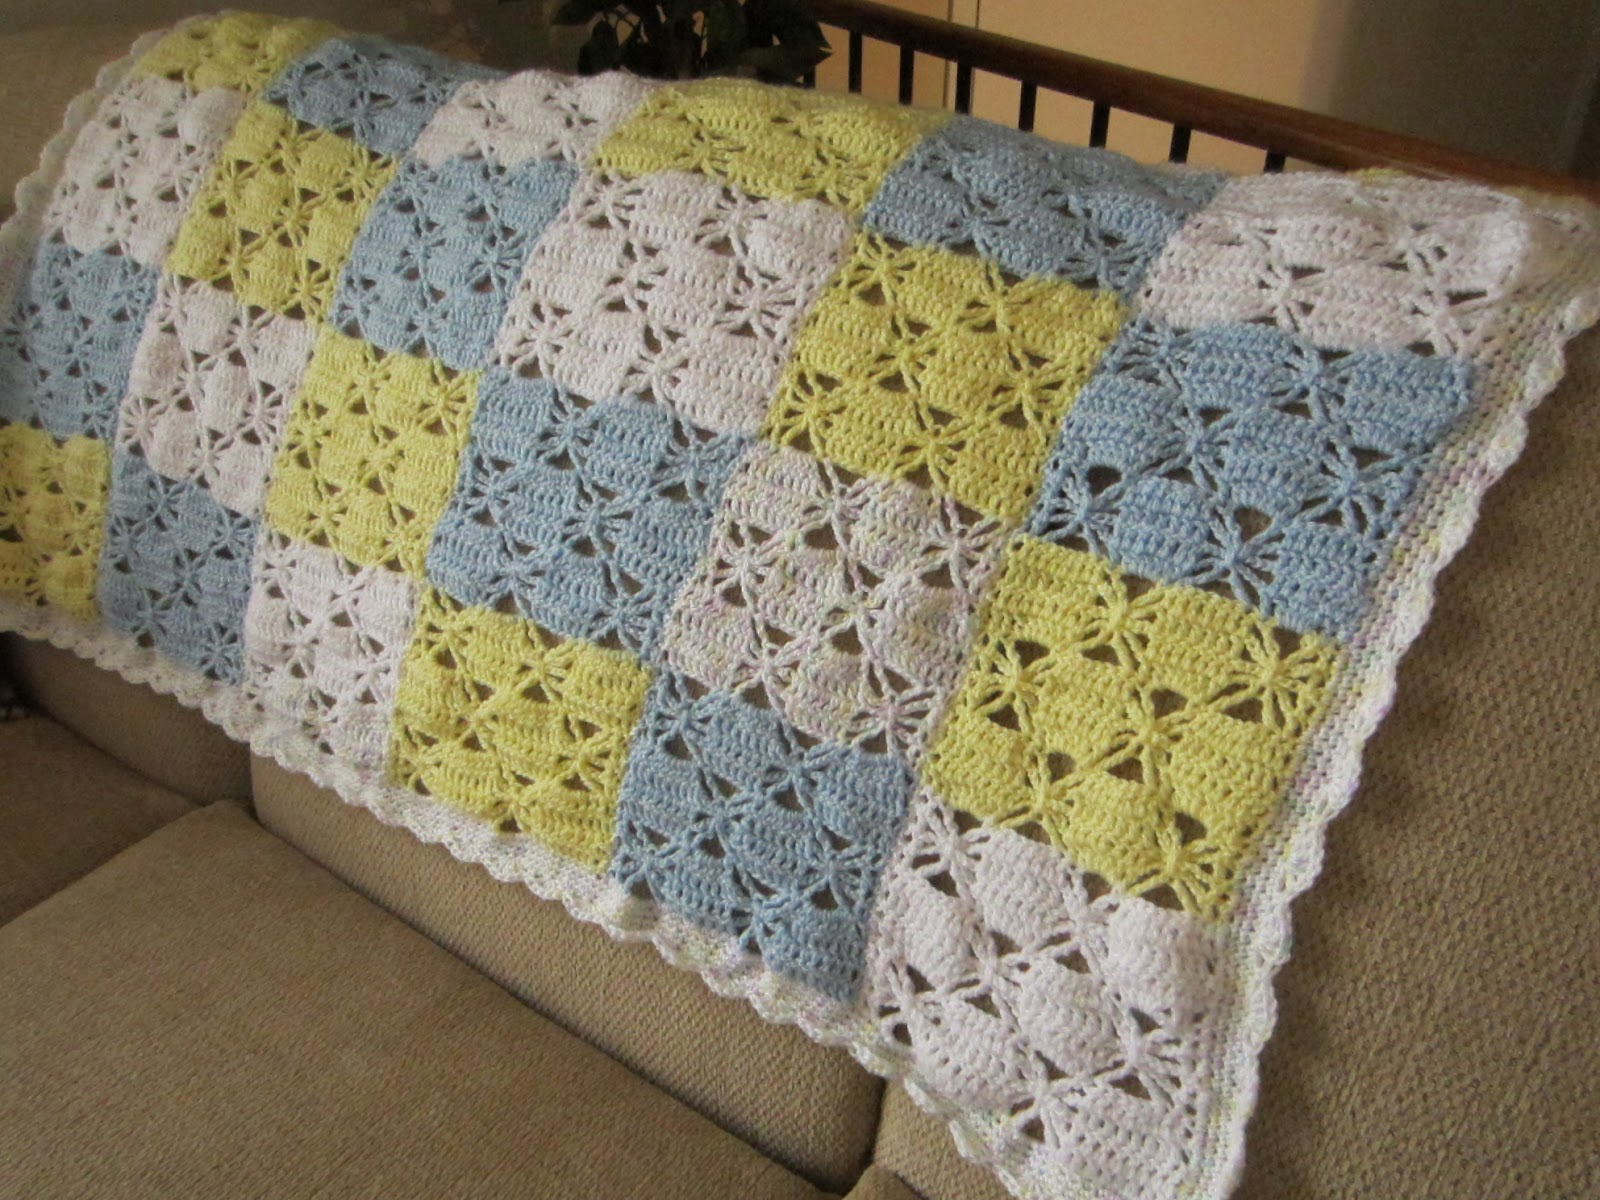 Simple Homecraft: Crocheted Baby Blanket